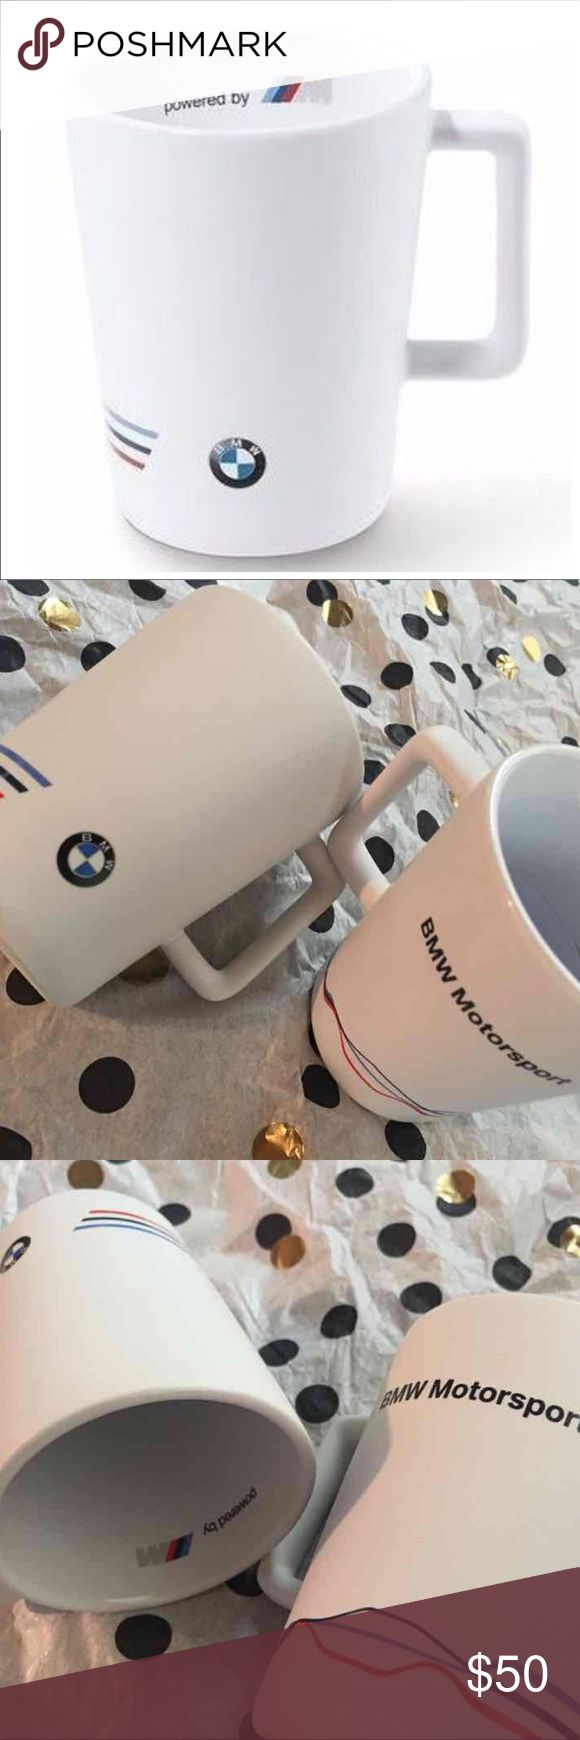 """(2) New BMW Motorsport Ceramic Coffee Mugs Pair/Set of 2 Brand New in Box. NIB. NWT. BNIB. From BMW Dealership. Matte White outer and Glossy White inner.  Rectangular handle. Both are identical. Capacity: 10 ounces / 10oz / 300mL. 4.13"""" Retail $50. Brisette BMW Other"""